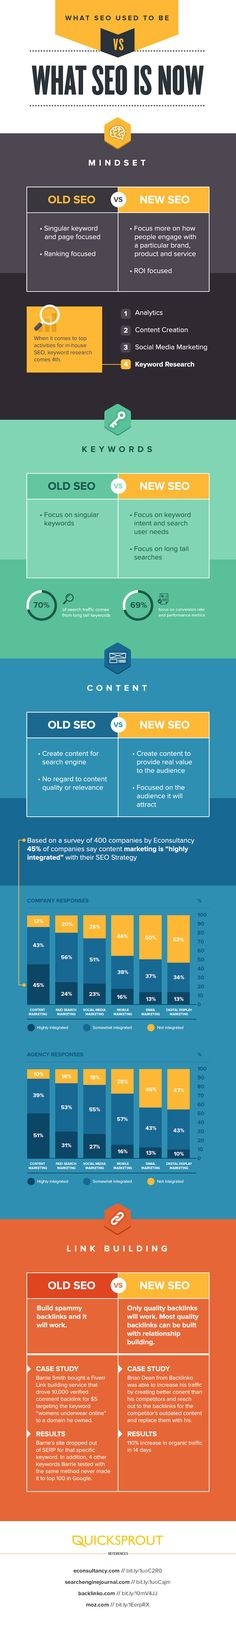 What SEO Used To Be Versus What SEO Is Now | QuickSprout.com